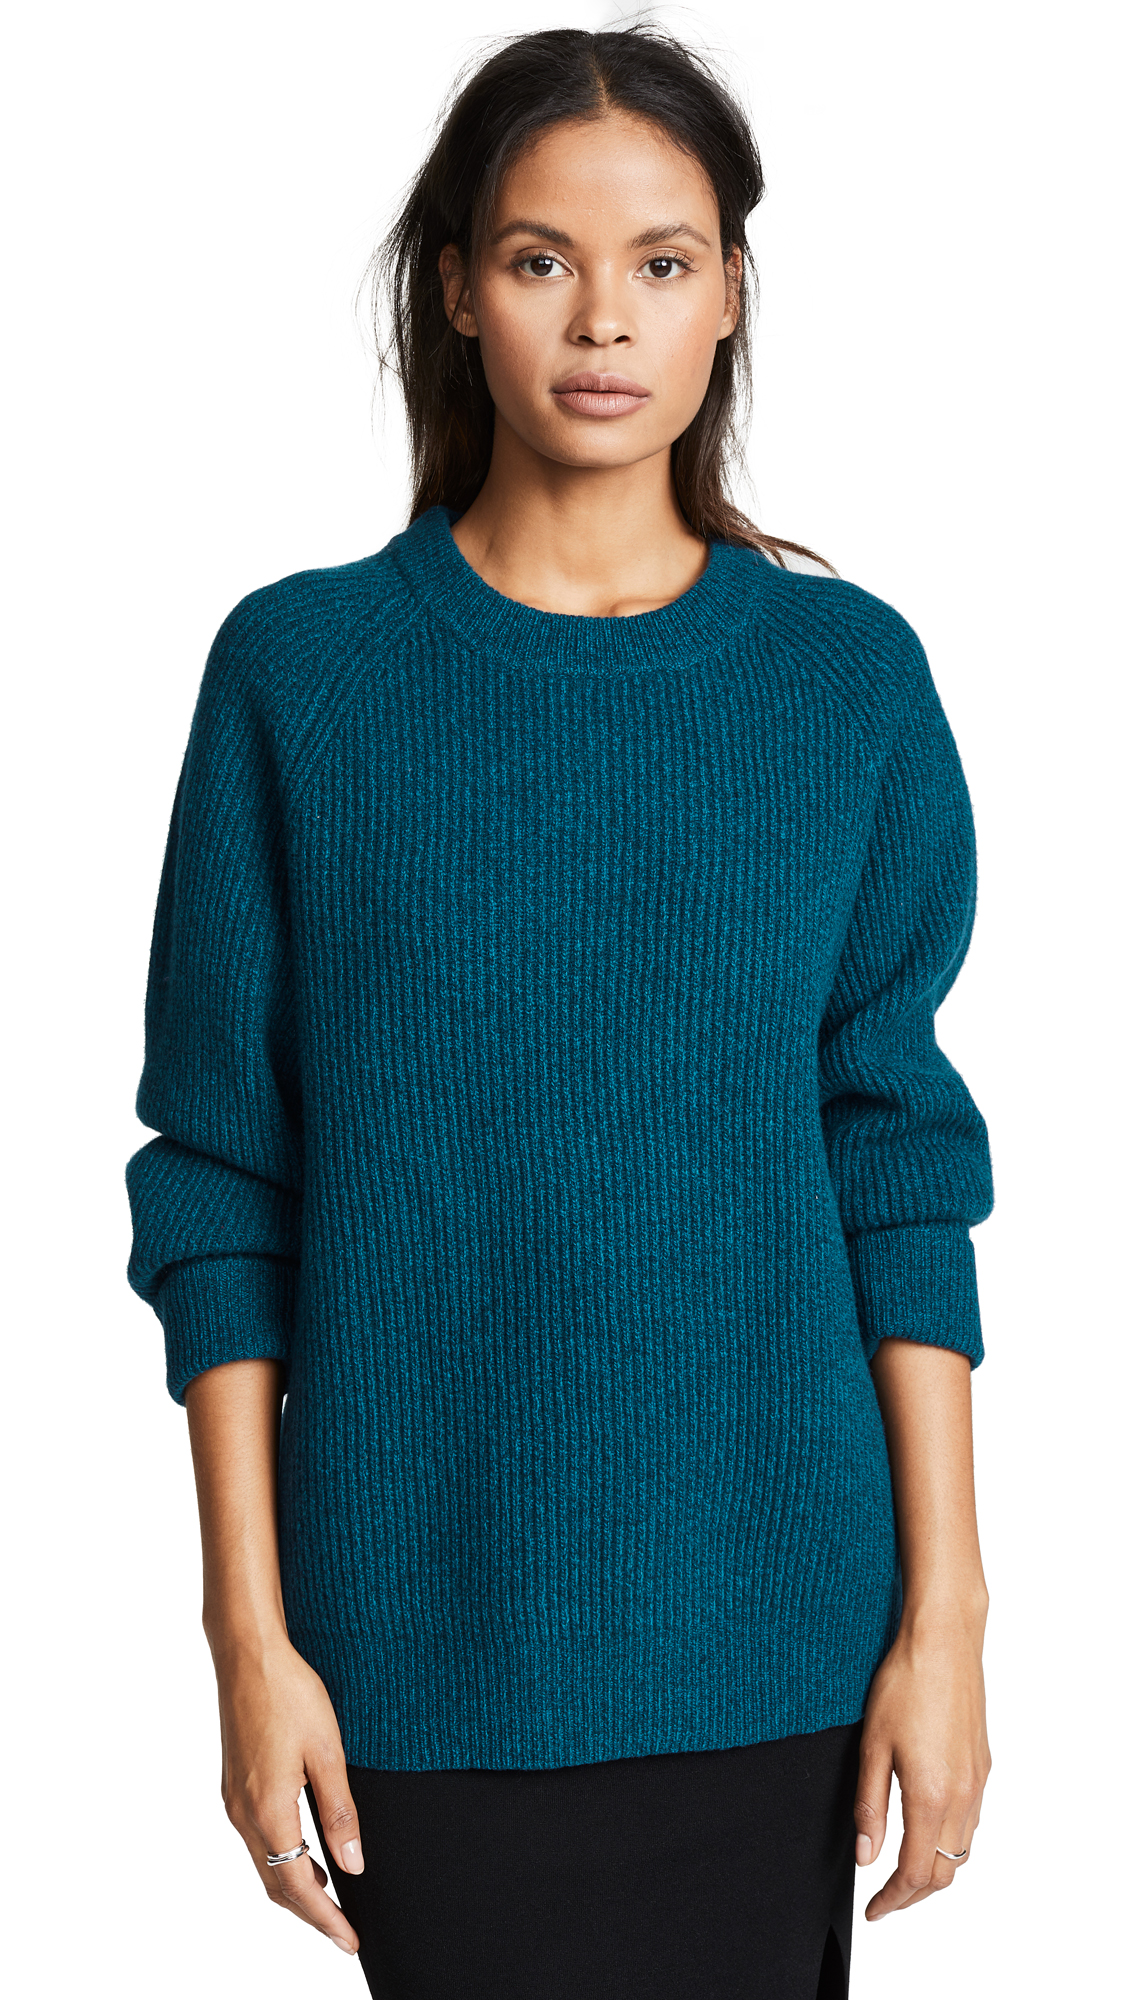 NO. 6 Darwin Sweater in Teal